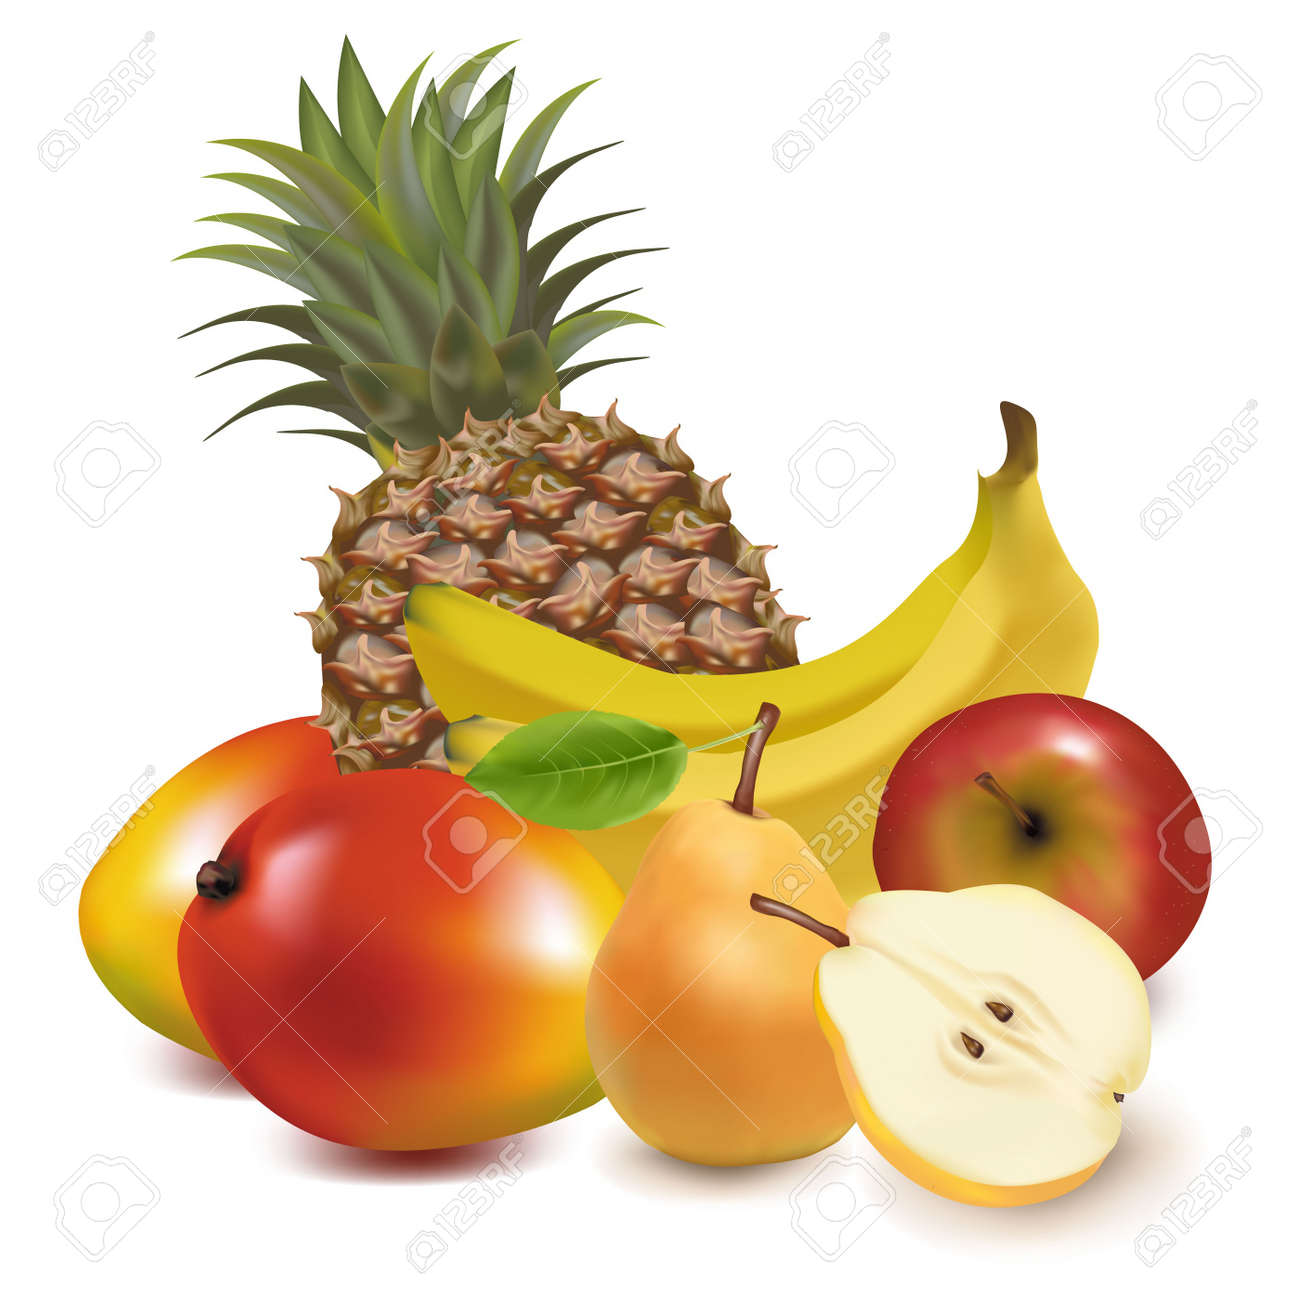 109 319 fruit vegetables cliparts stock vector and royalty free